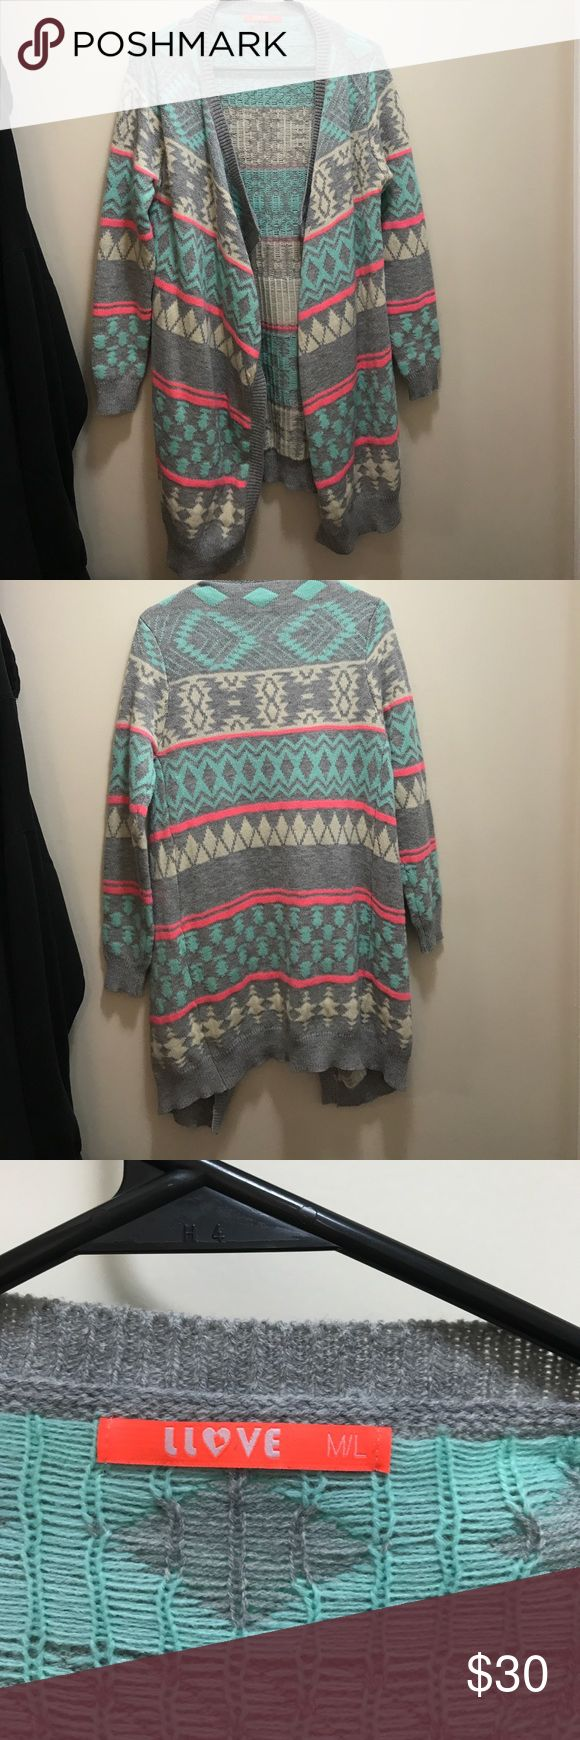 Llove Gray Cardigan with Neon Color Accents EUC Worn one time to a campfire. Washed after one time. Beautiful light gray with neon pink and blue accents. Aztec pattern detailing llove Sweaters Cardigans